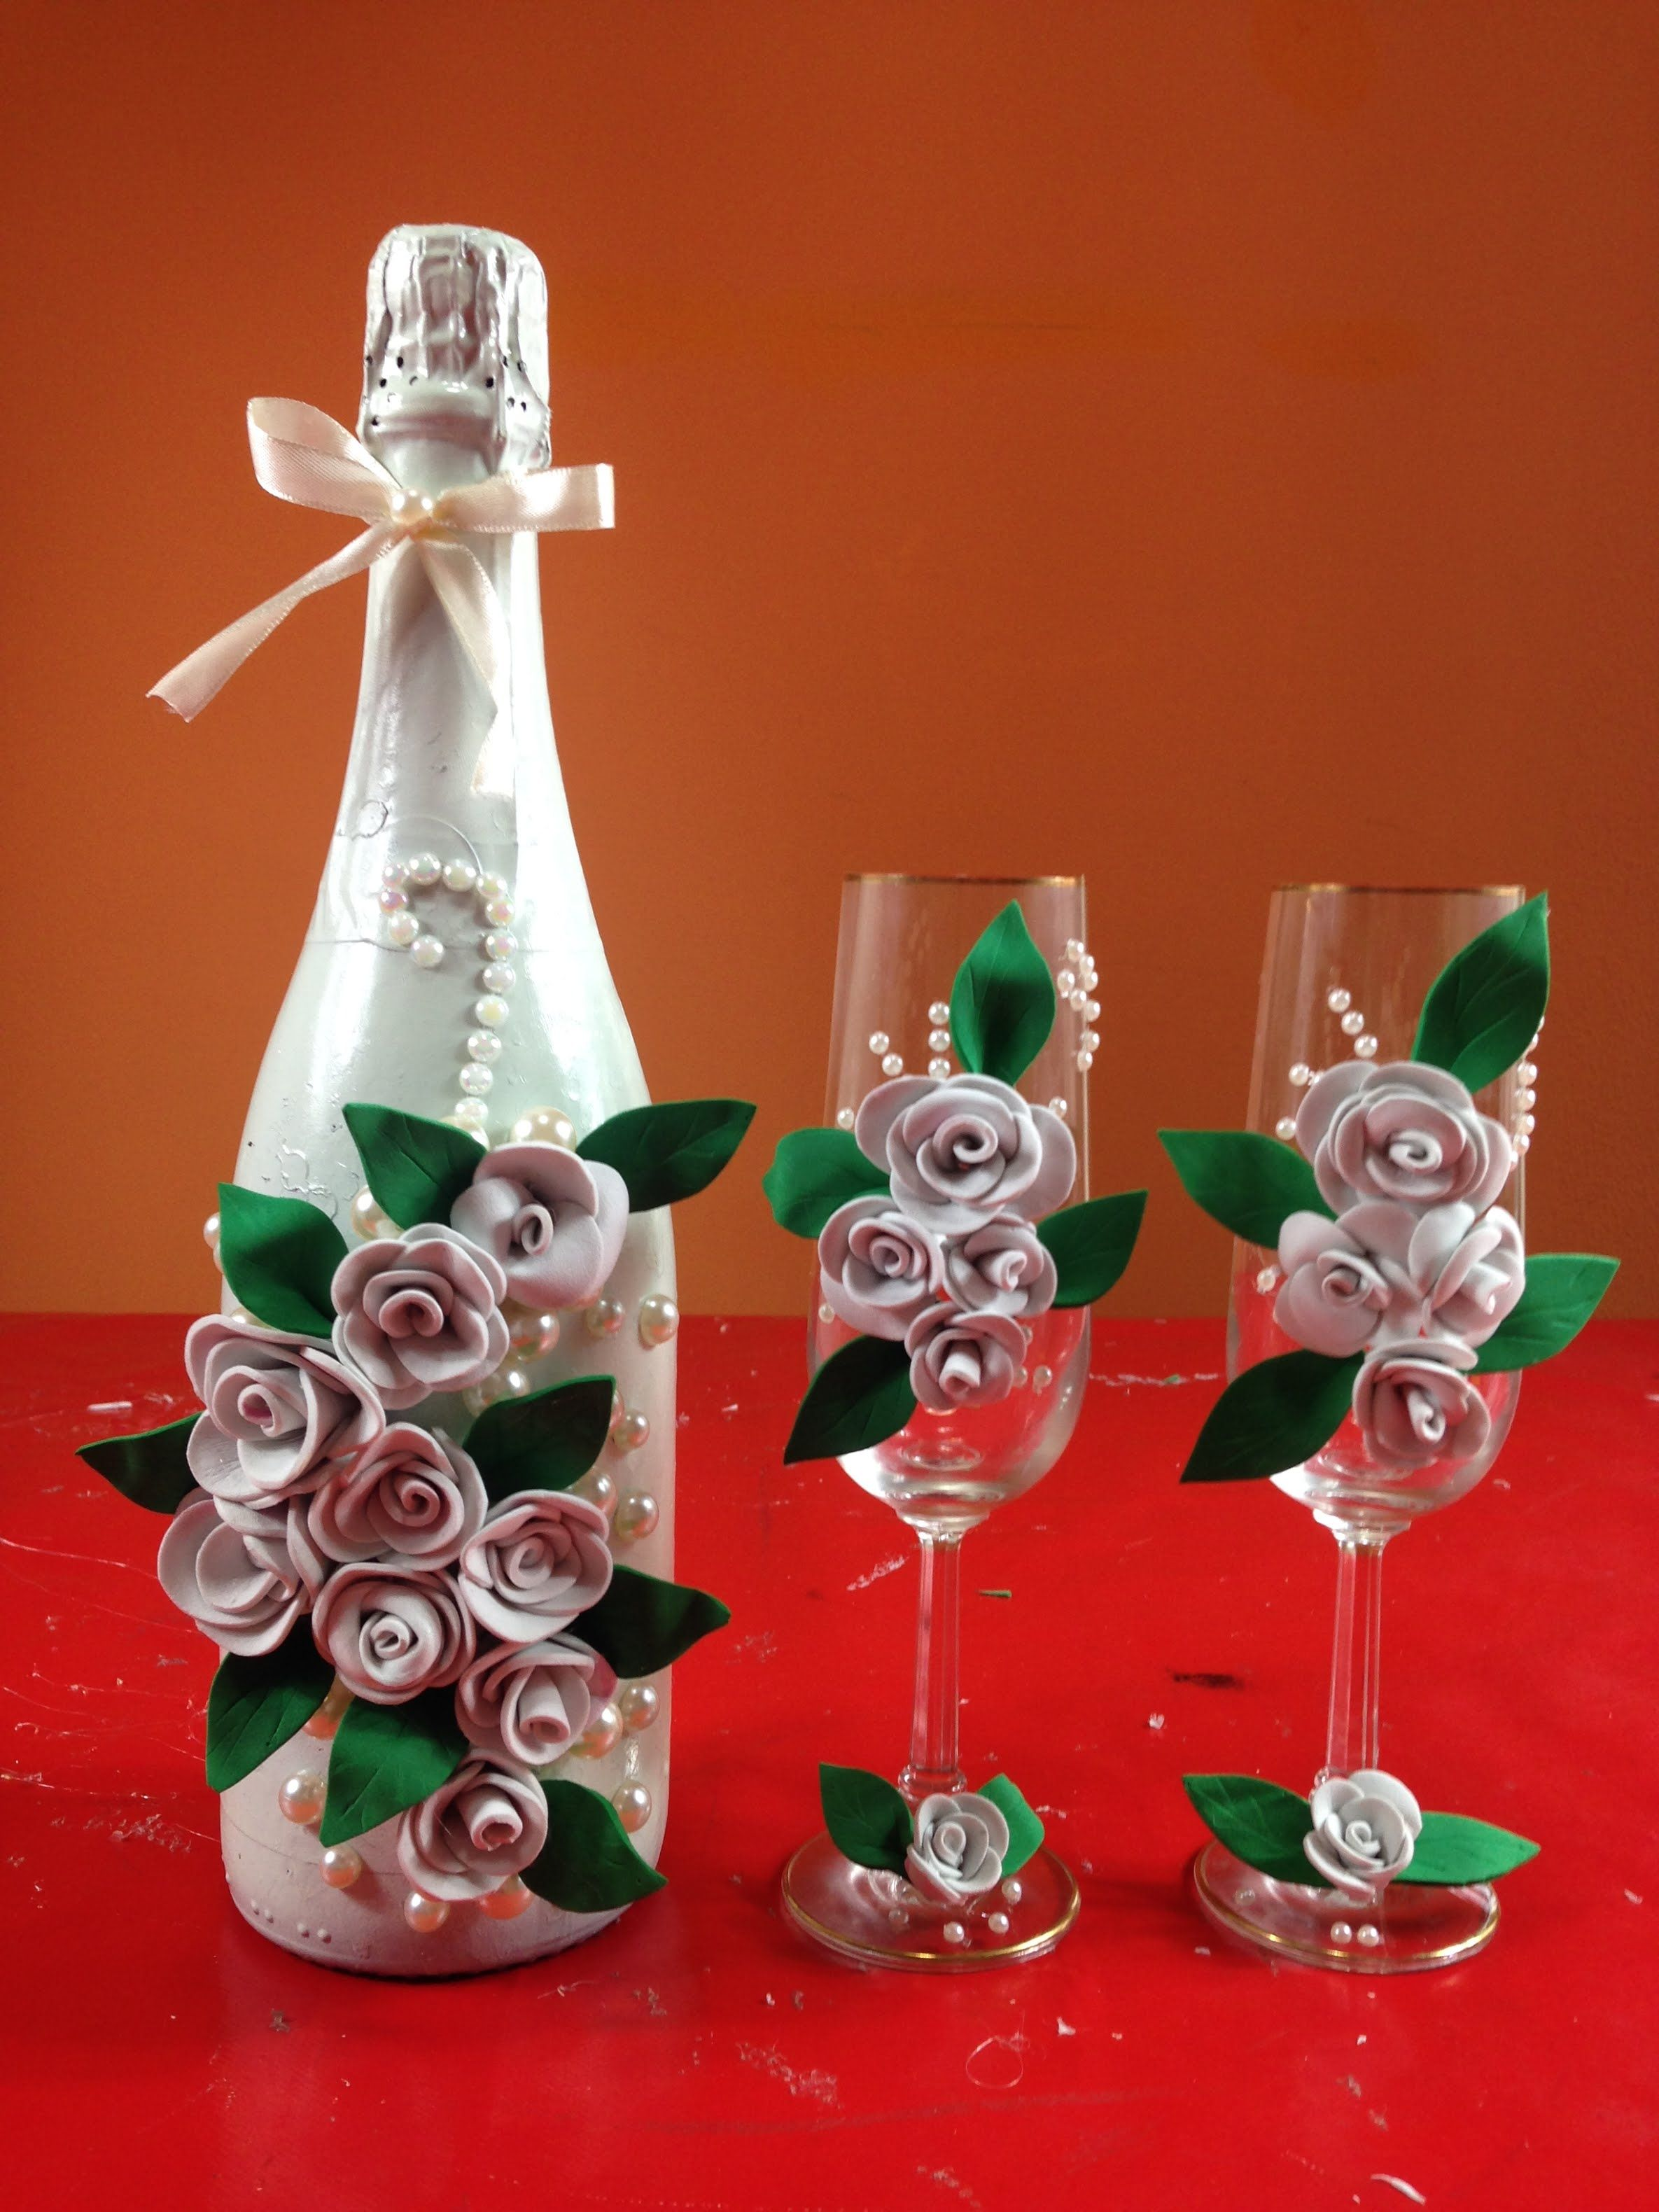 Como Decorar Una Fiesta De Matrimonio Sencilla Sencilla Decoración Botella Para Bodas Simple Bottle Decoration